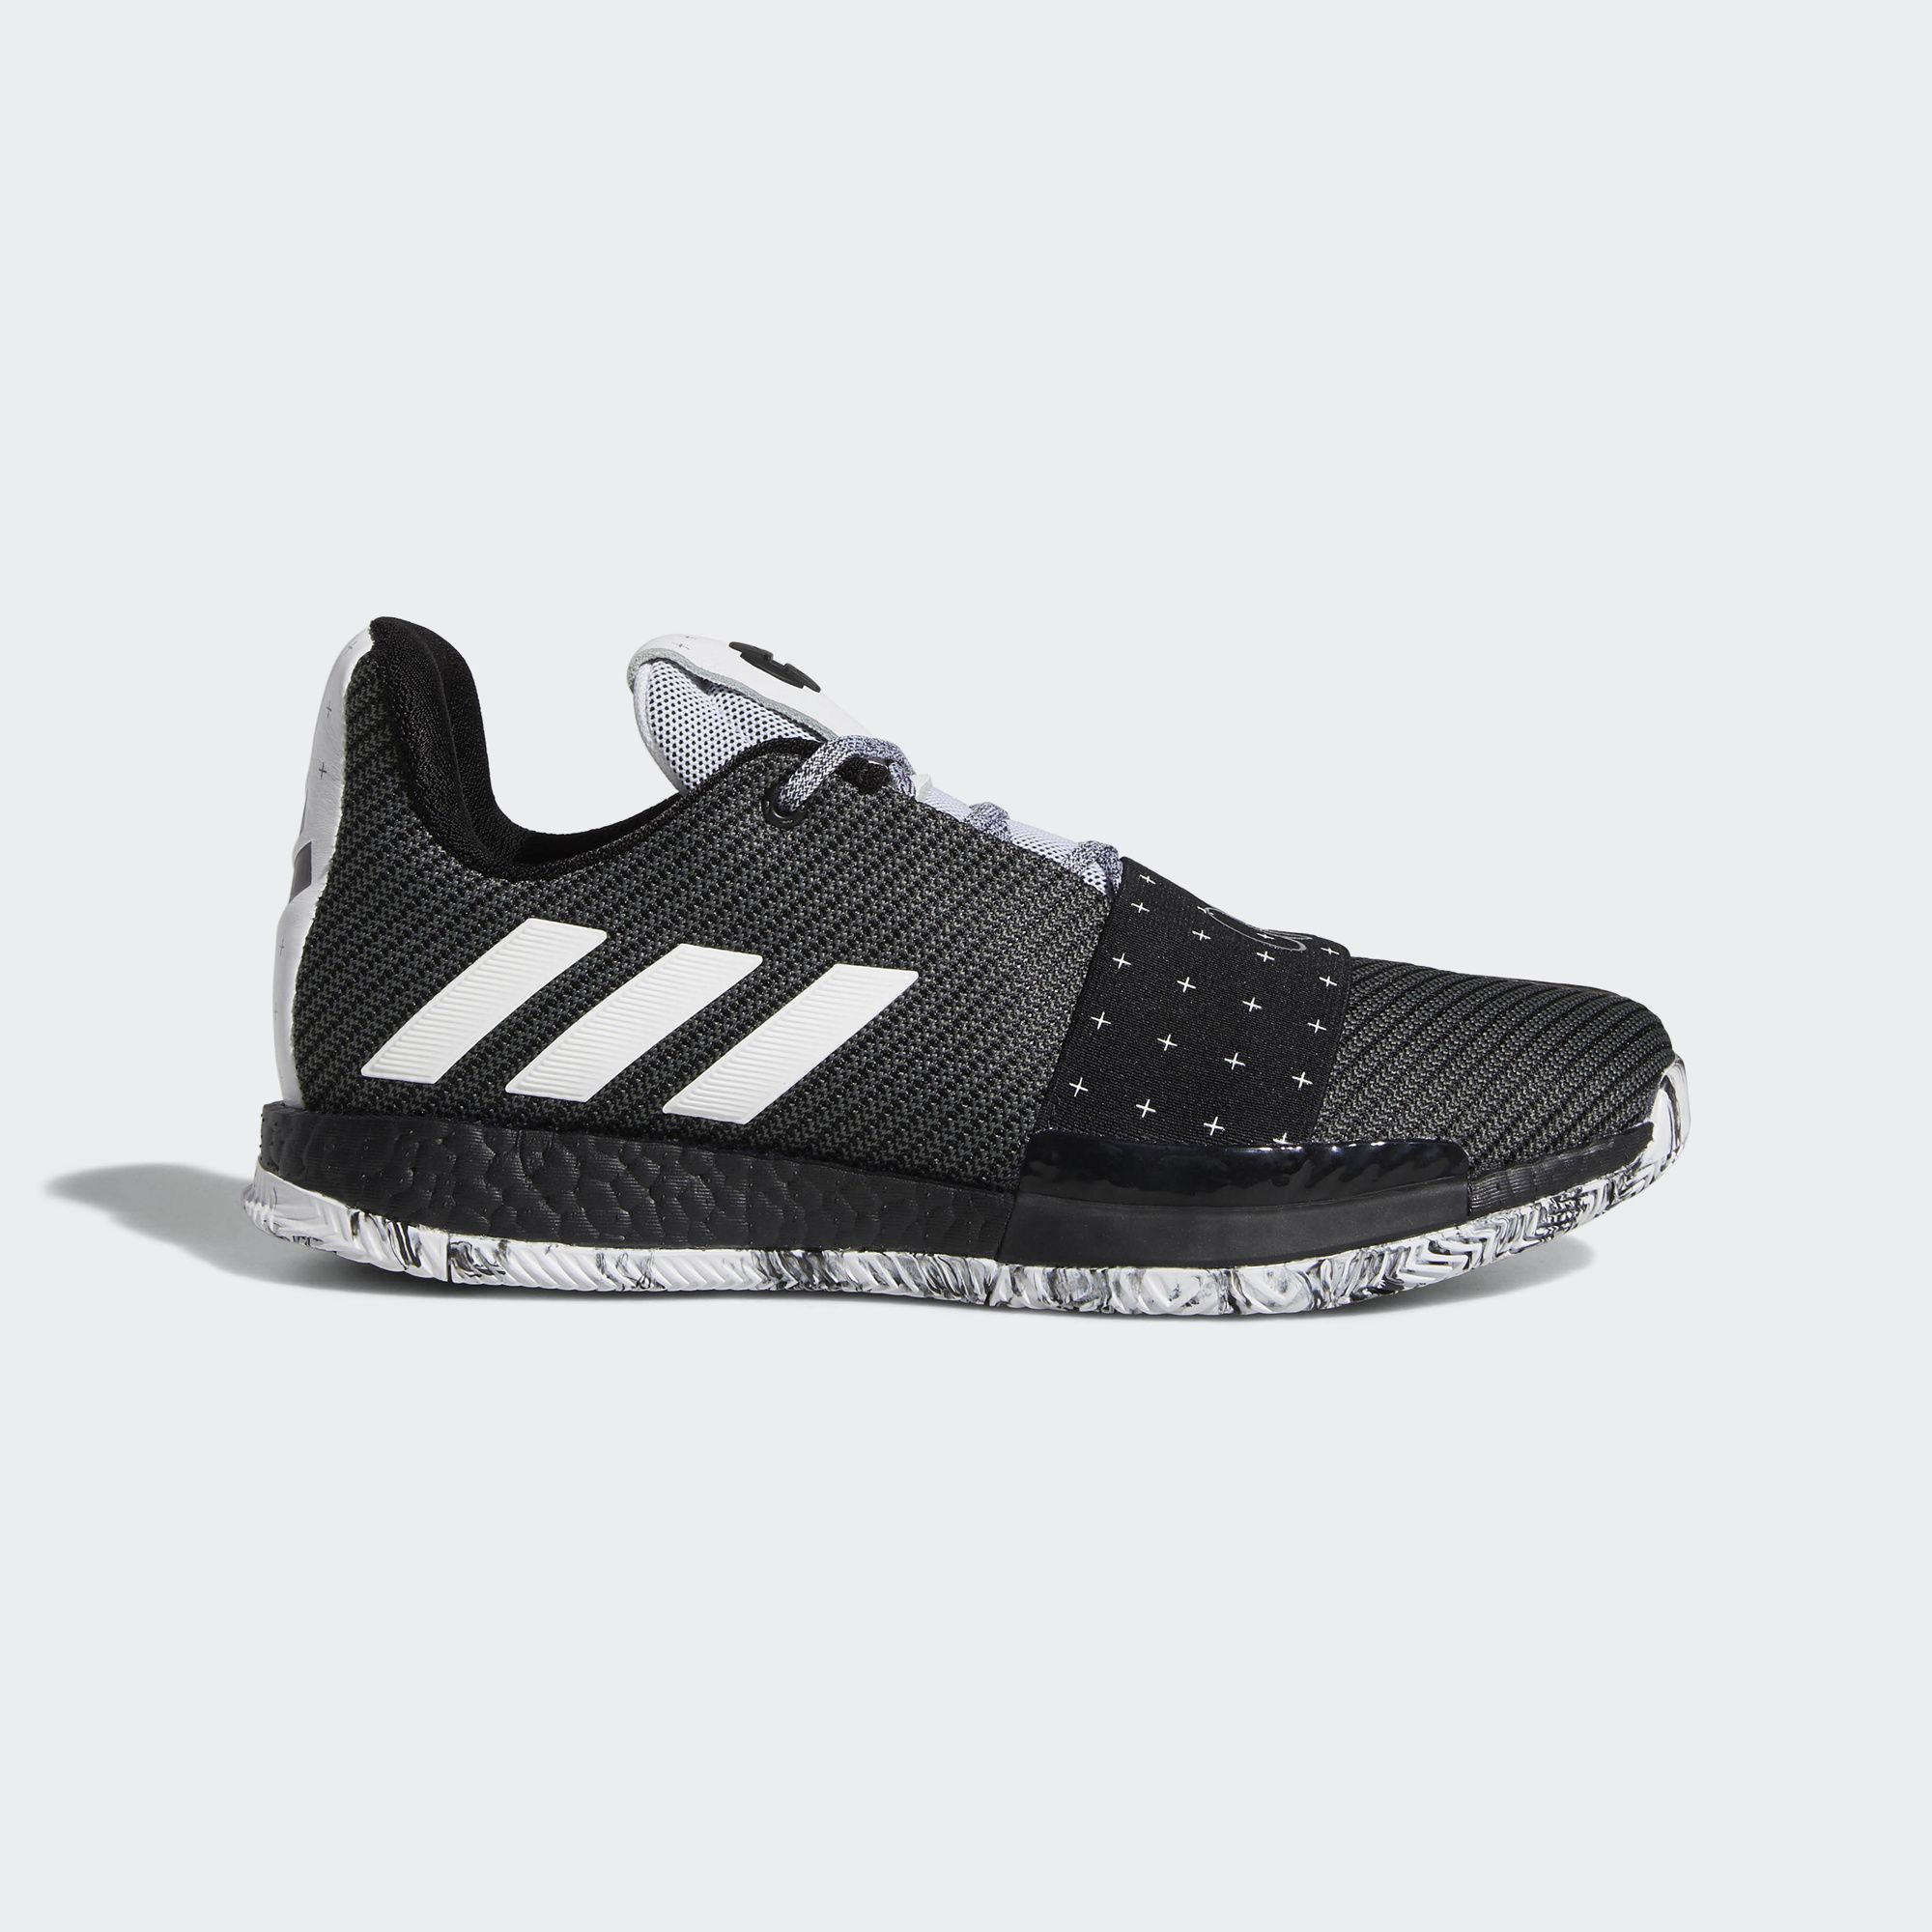 42b20b5d5cf5 James Harden s adidas Harden Vol 3 Release Date is Official ...